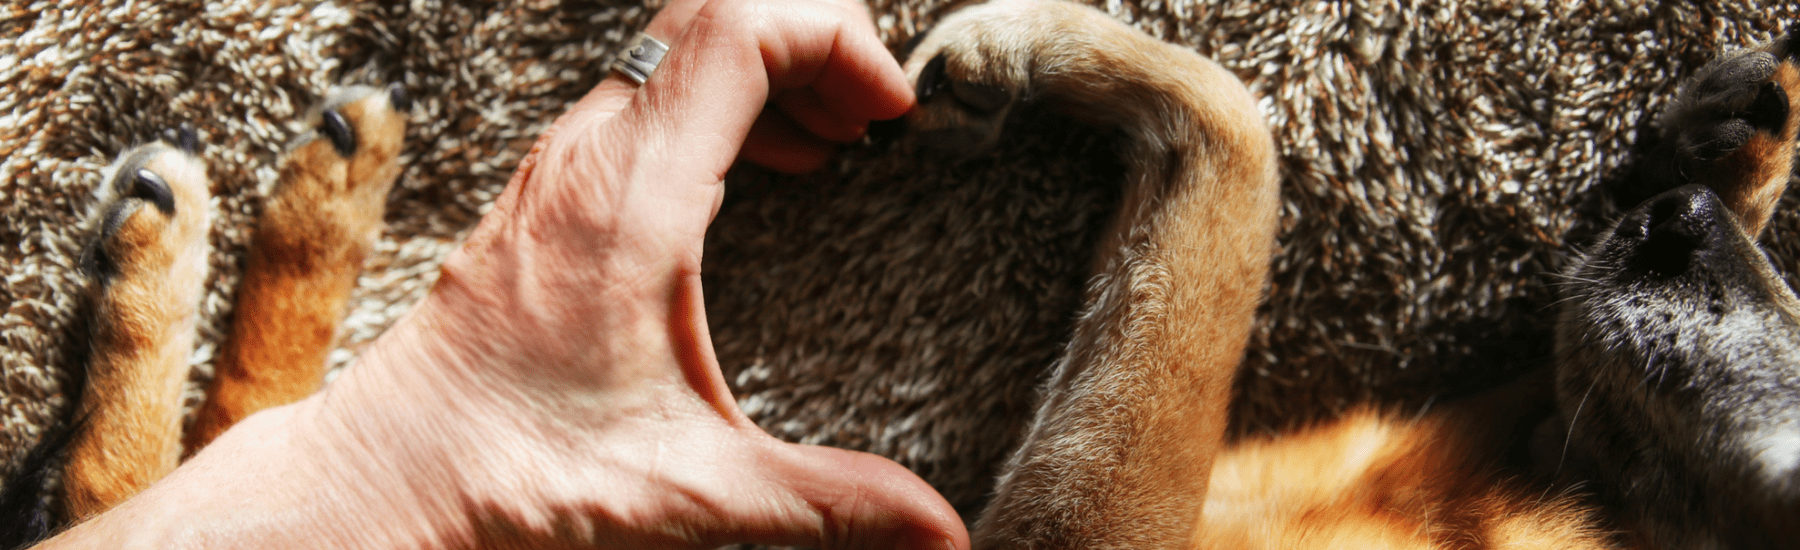 Hand of a person and dog paw forming the shape of a heart